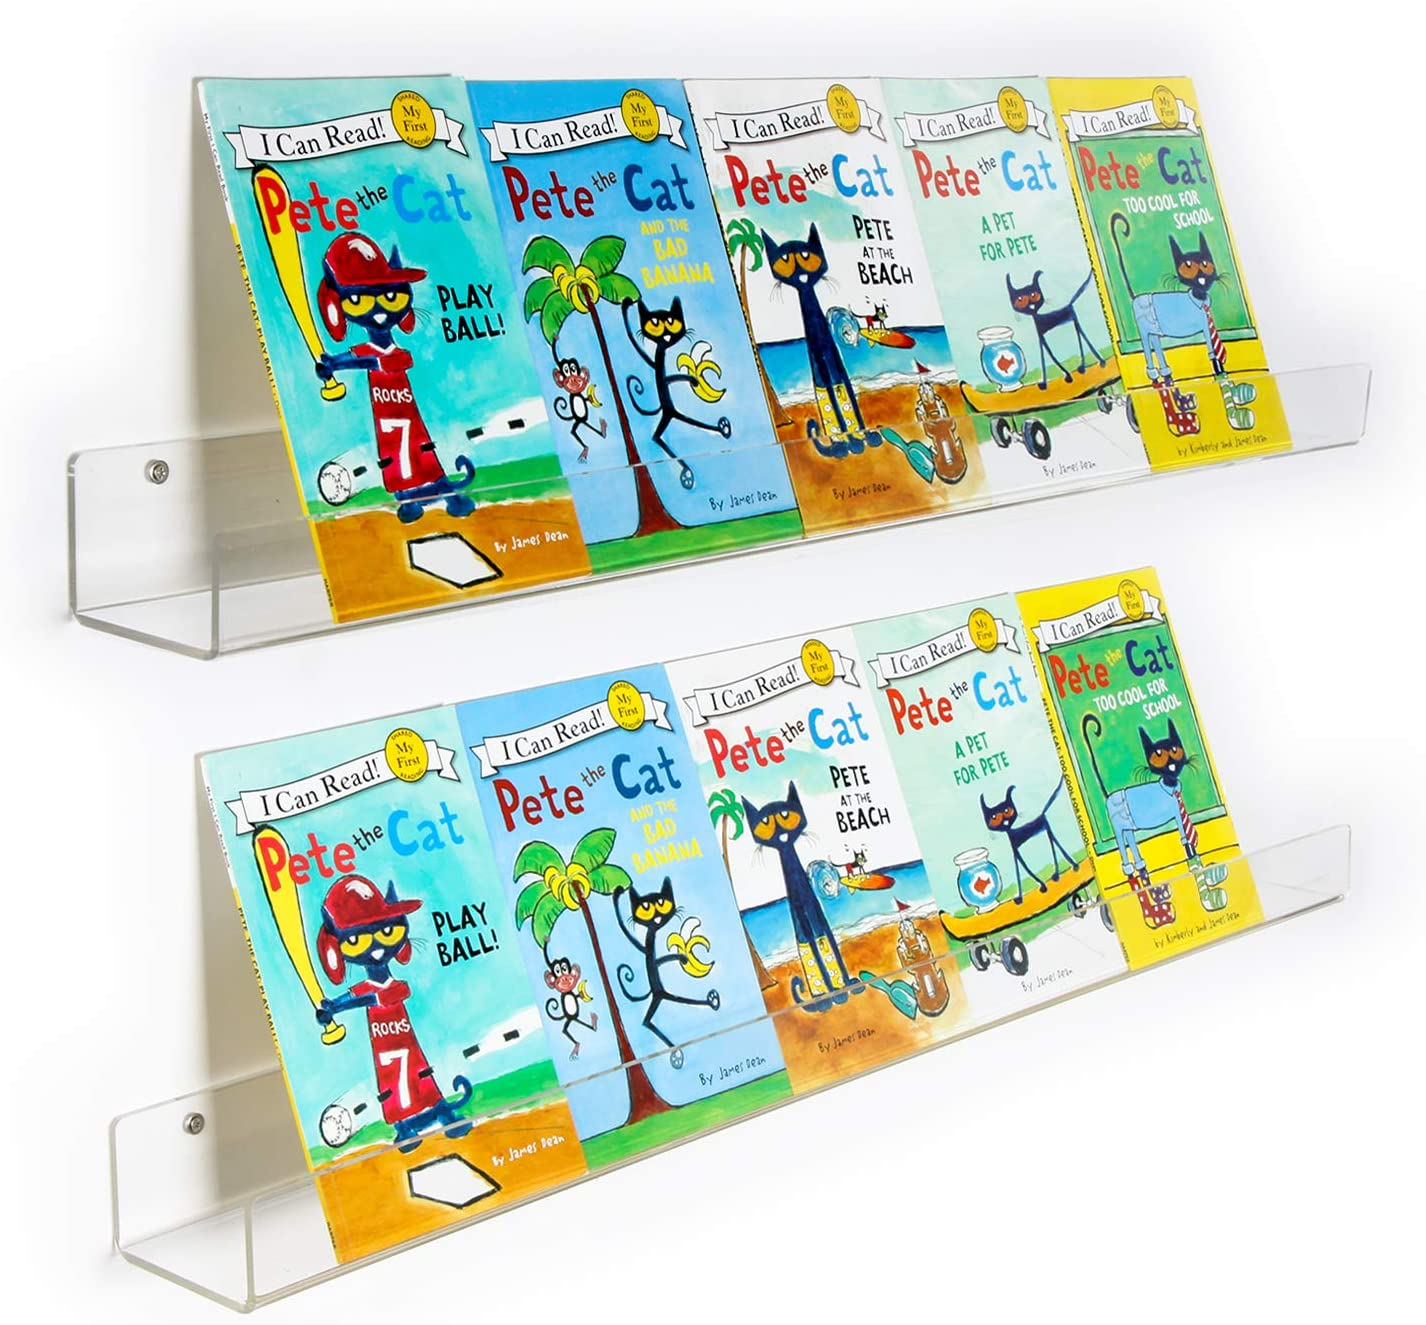 NIUBEE Kids Acrylic Floating Bookshelf 36 Inch,2 Pack,Clear Invisible Wall Bookshelves Ledge Book Shelf,50/% Thicker with Free Screwdriver